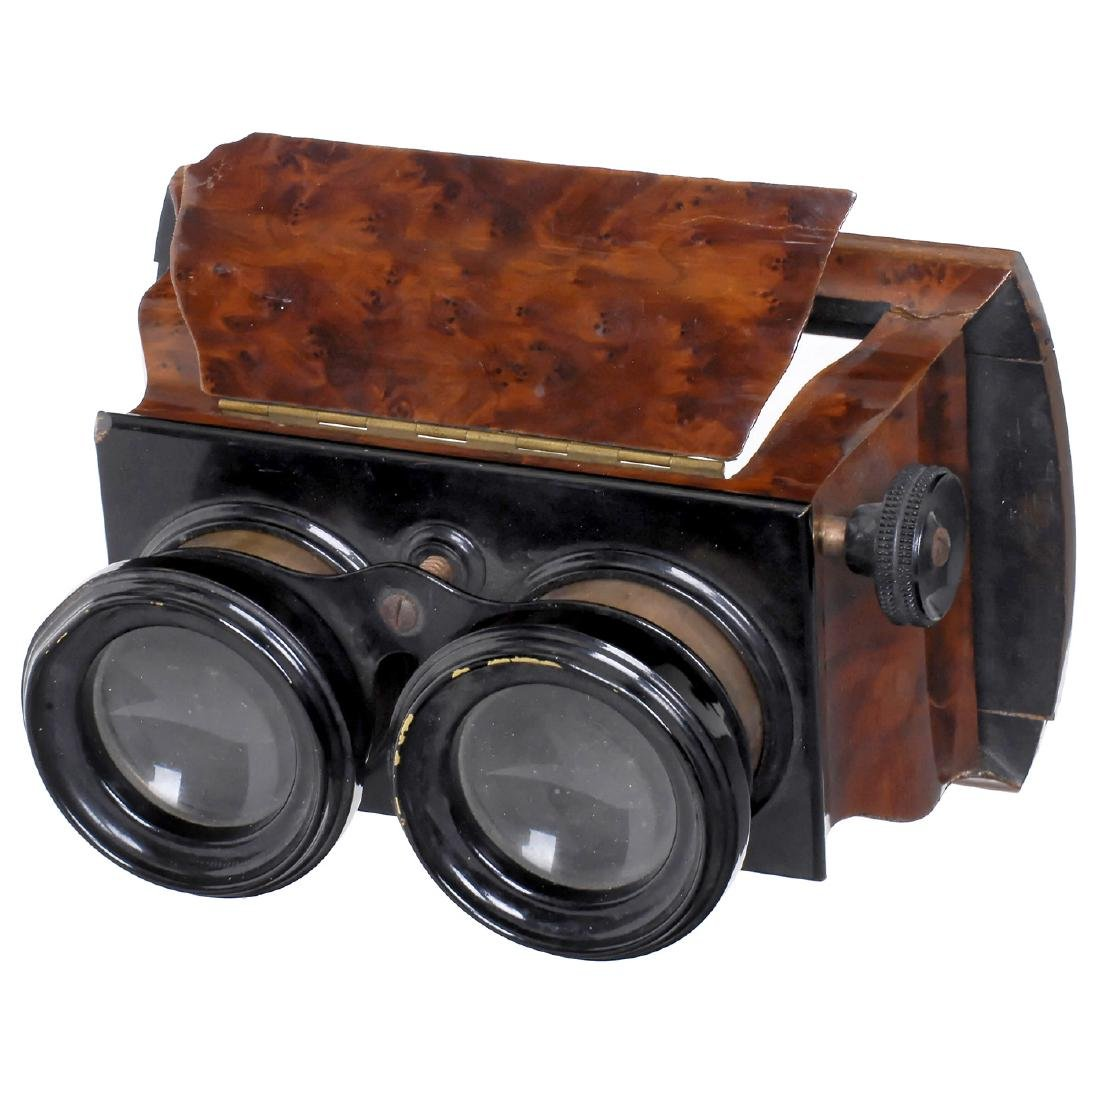 Brewster-Type Stereo Viewer, c. 1880